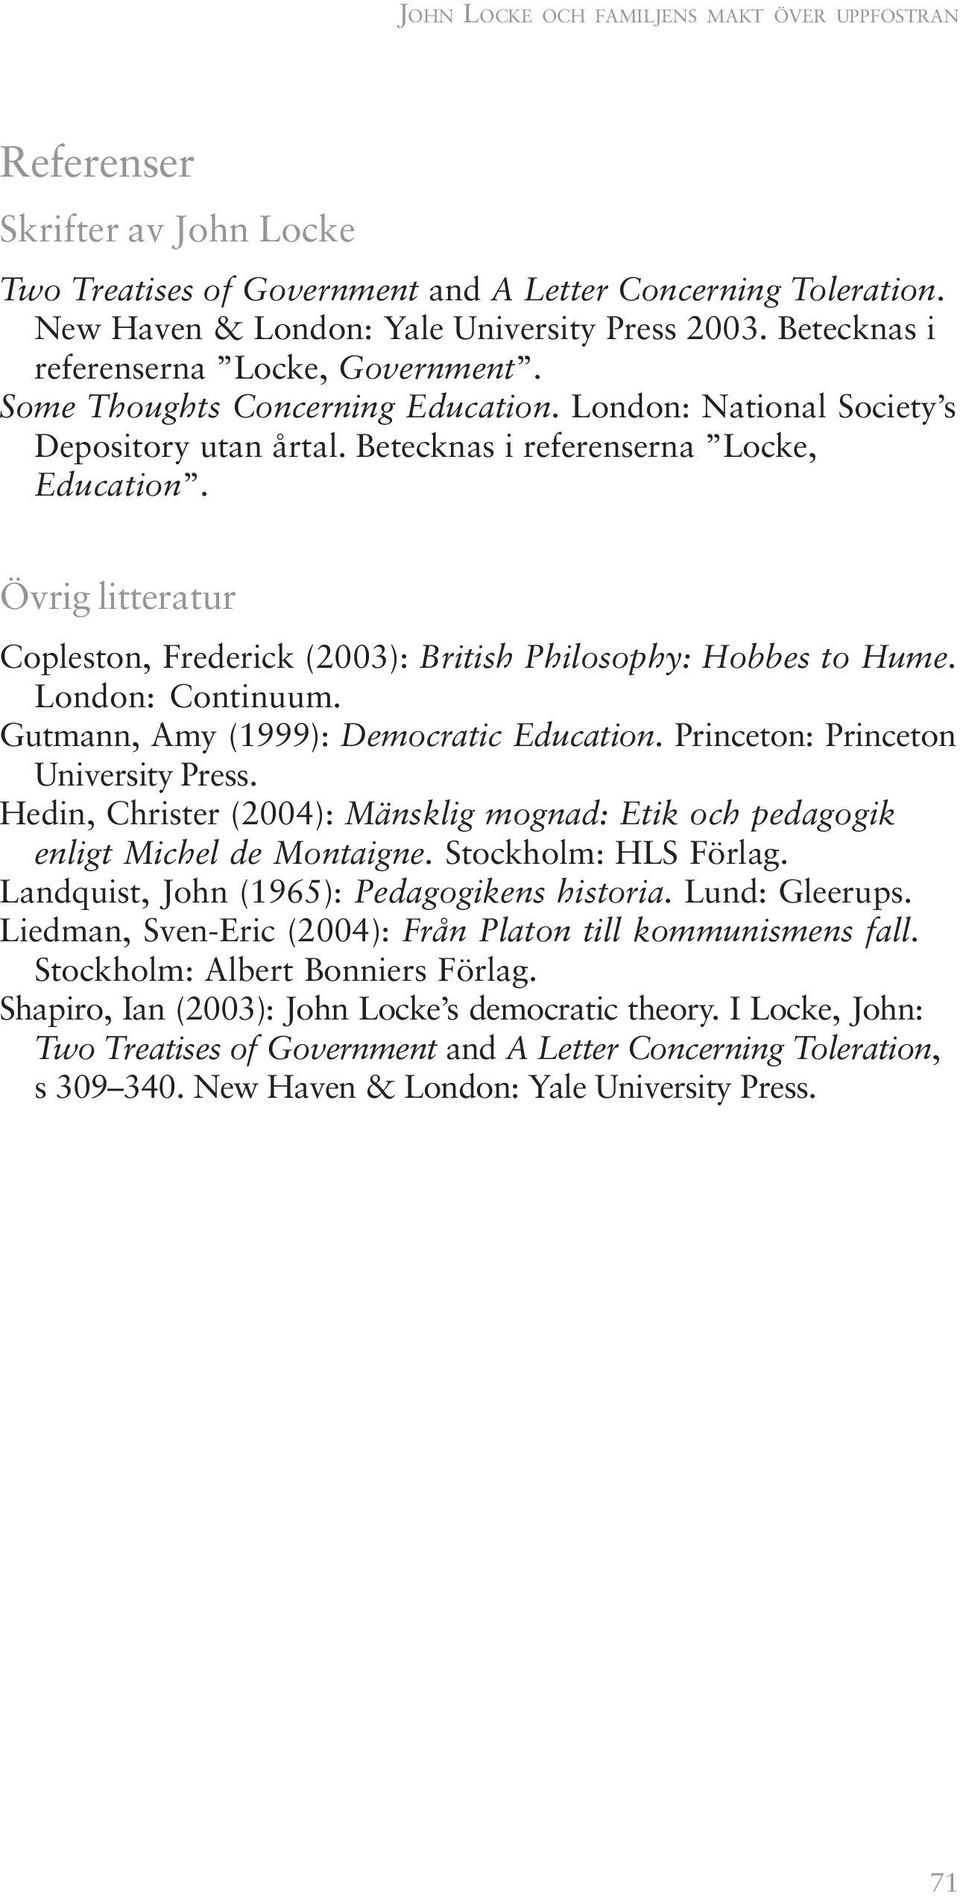 Övrig litteratur Copleston, Frederick (2003): British Philosophy: Hobbes to Hume. London: Continuum. Gutmann, Amy (1999): Democratic Education. Princeton: Princeton University Press.